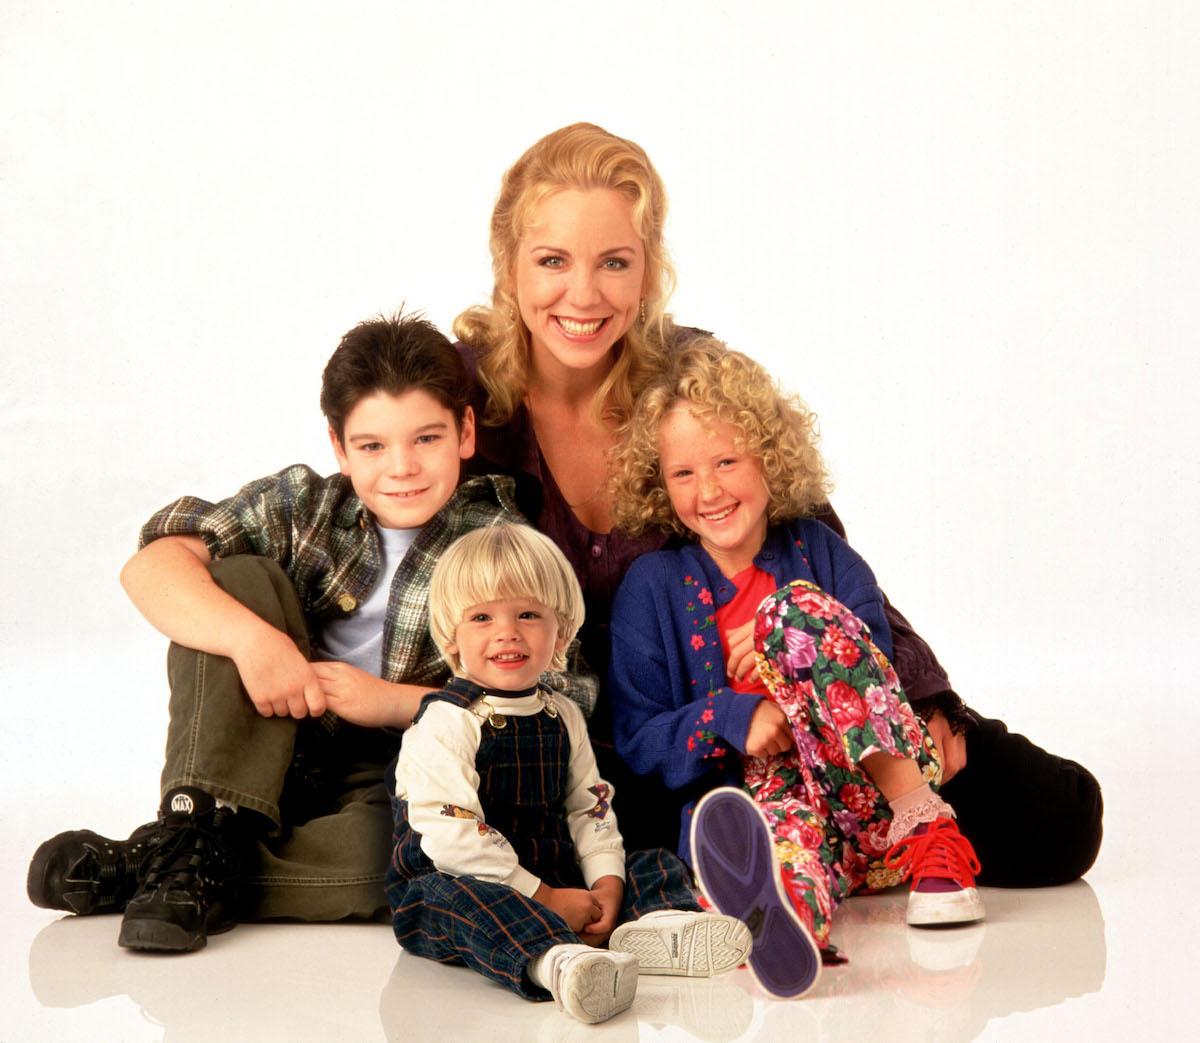 A group photo of the Grace Under Fire cast with white background